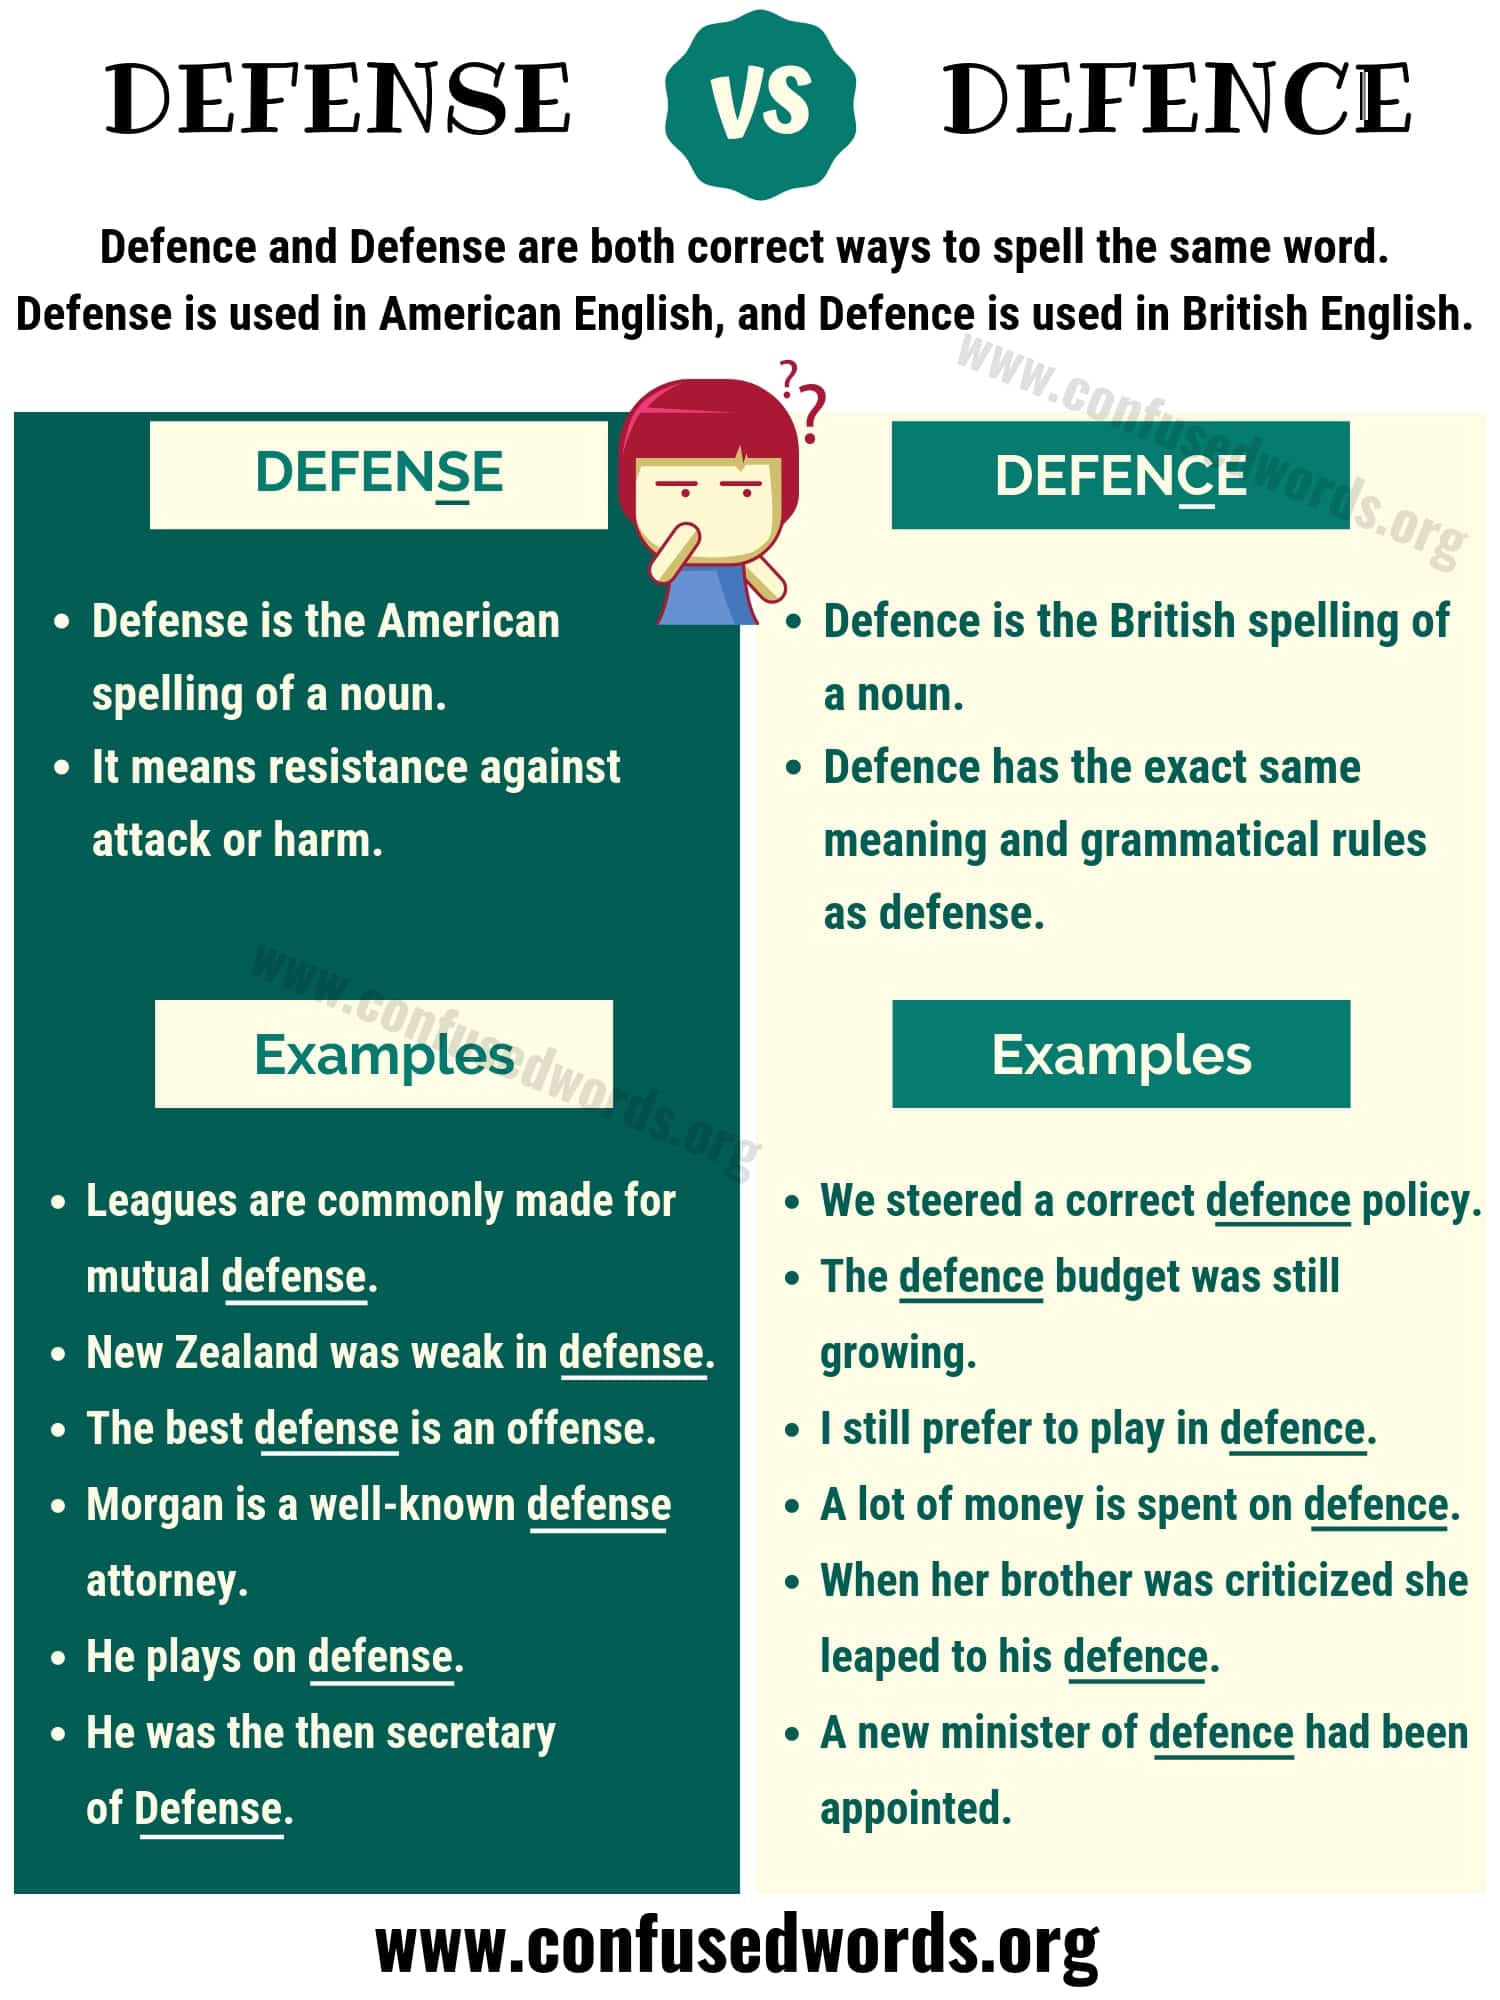 DEFENCE vs DEFENSE: How to Use Defense vs Defence Correctly